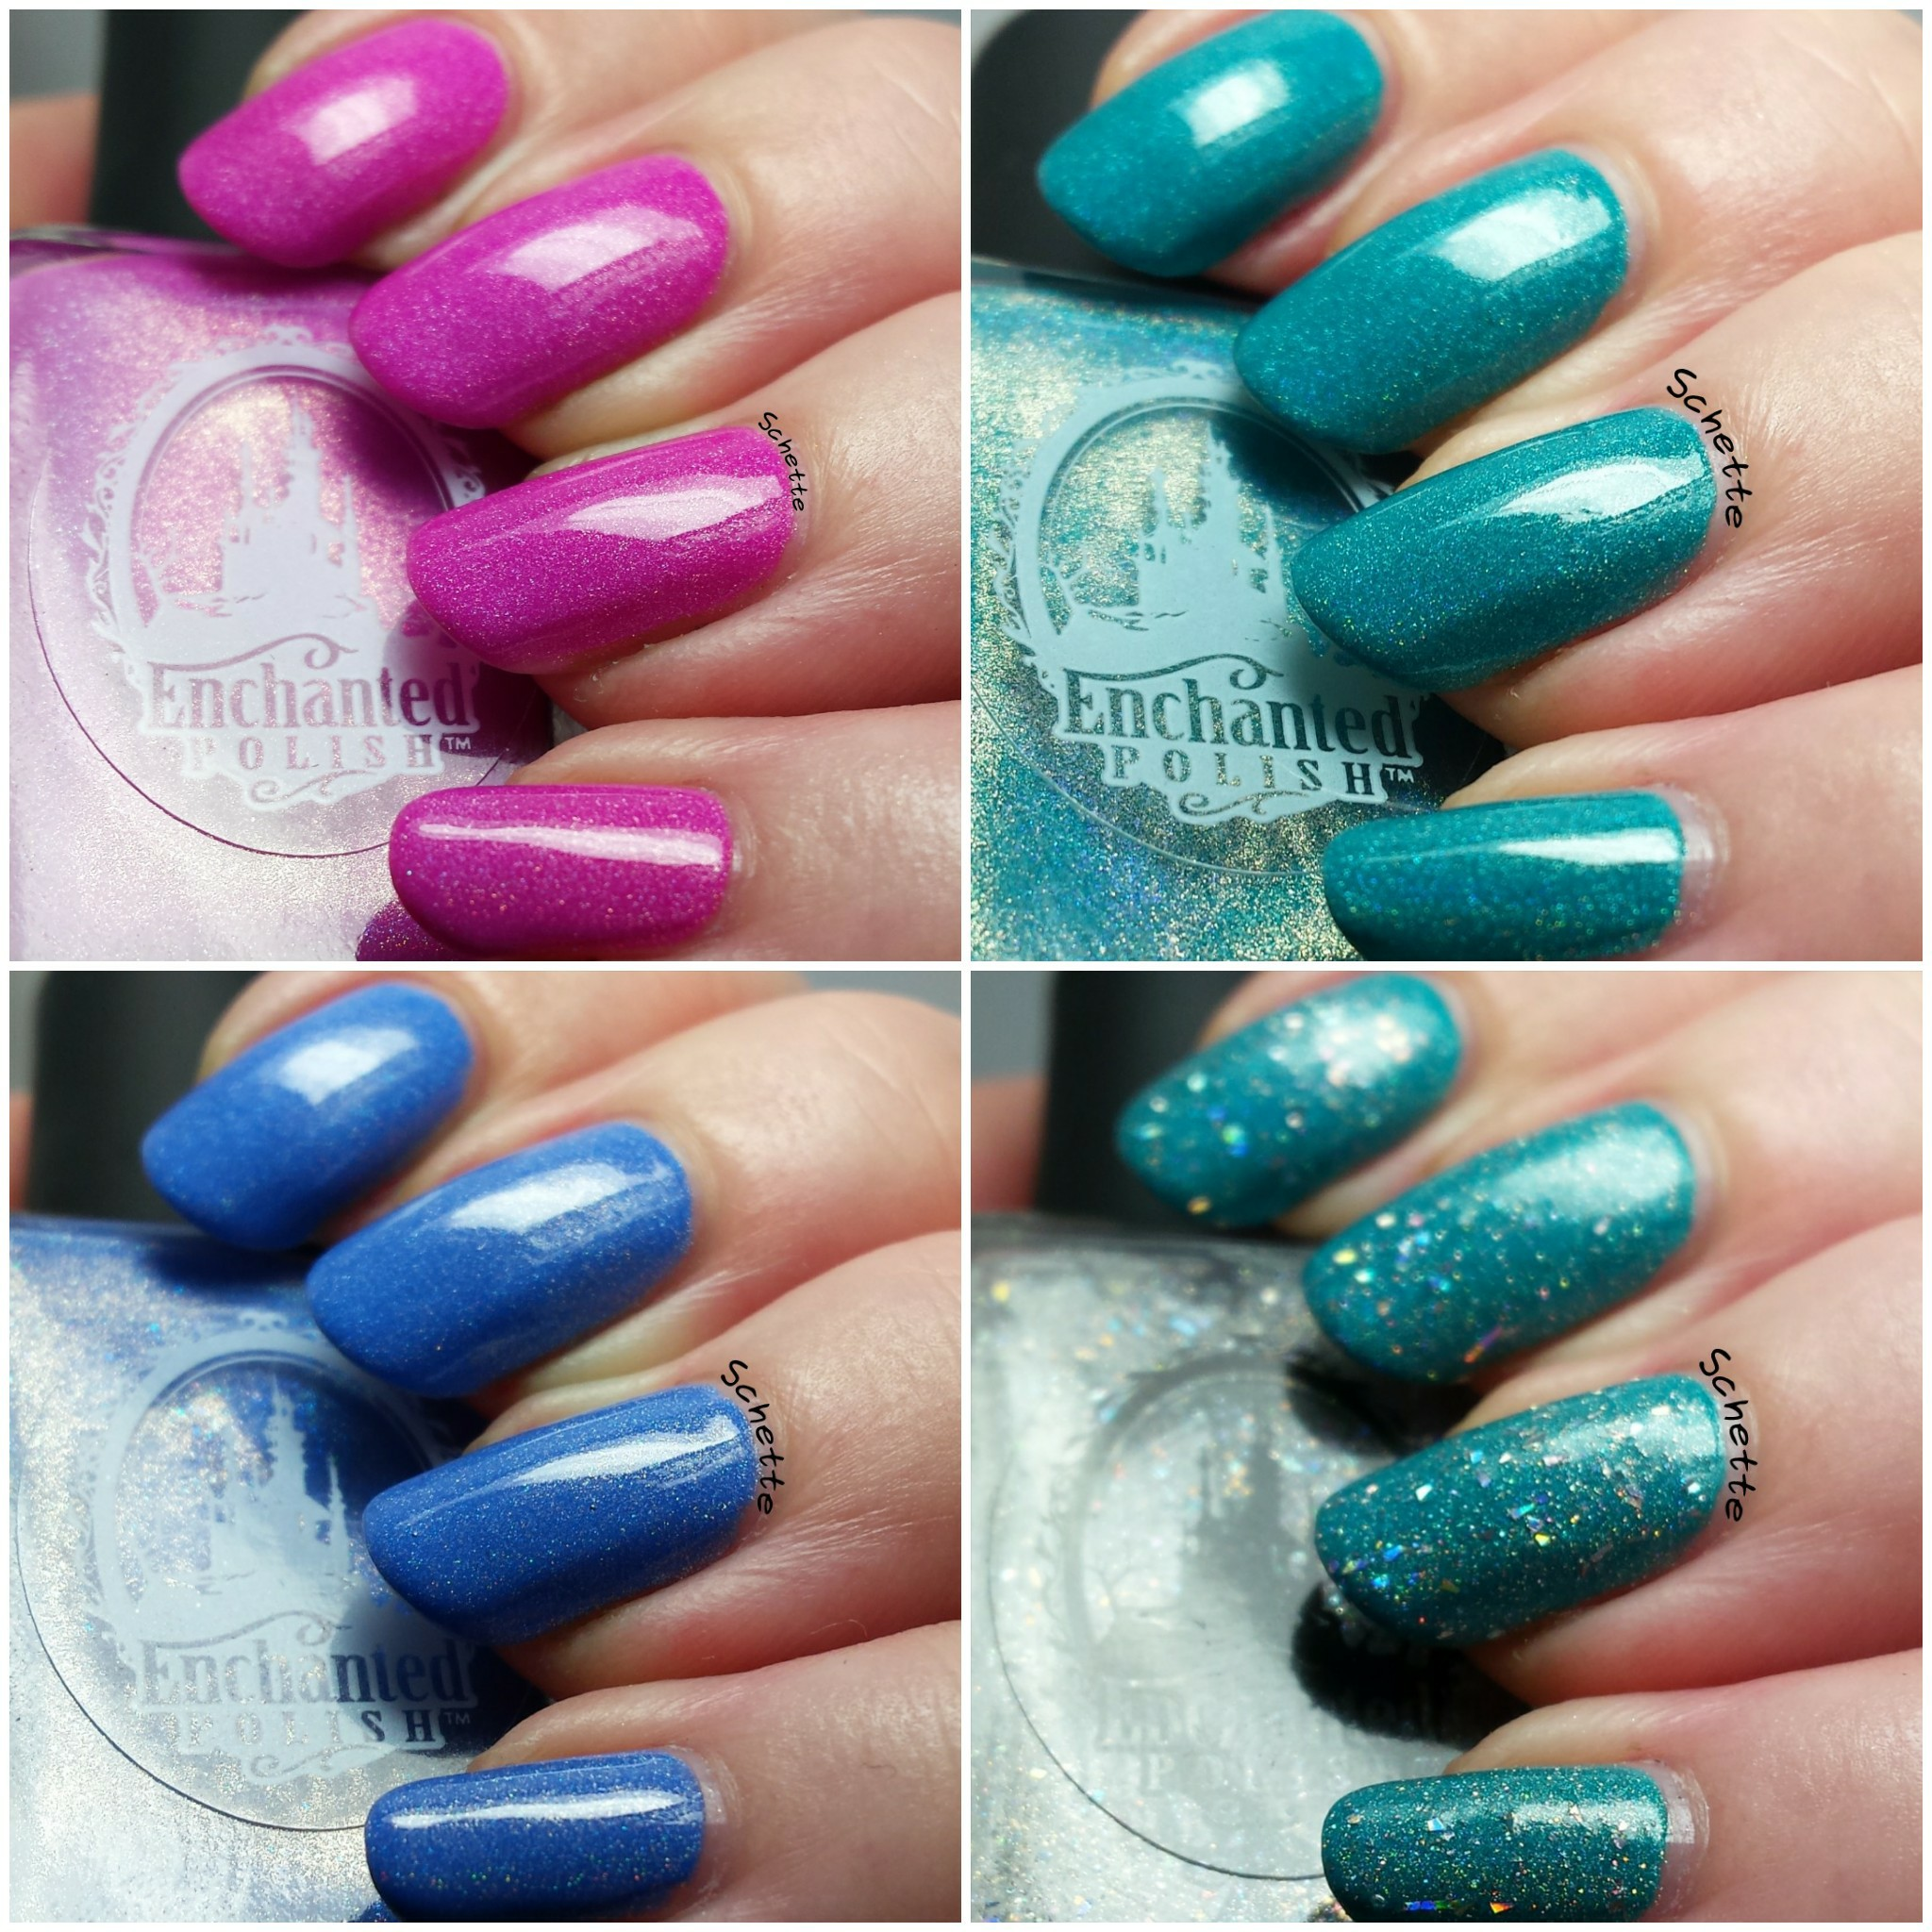 Enchanted Polish : Disco H20, Reign Beau, Dope Jam, Rainbow Juice (with pulp)